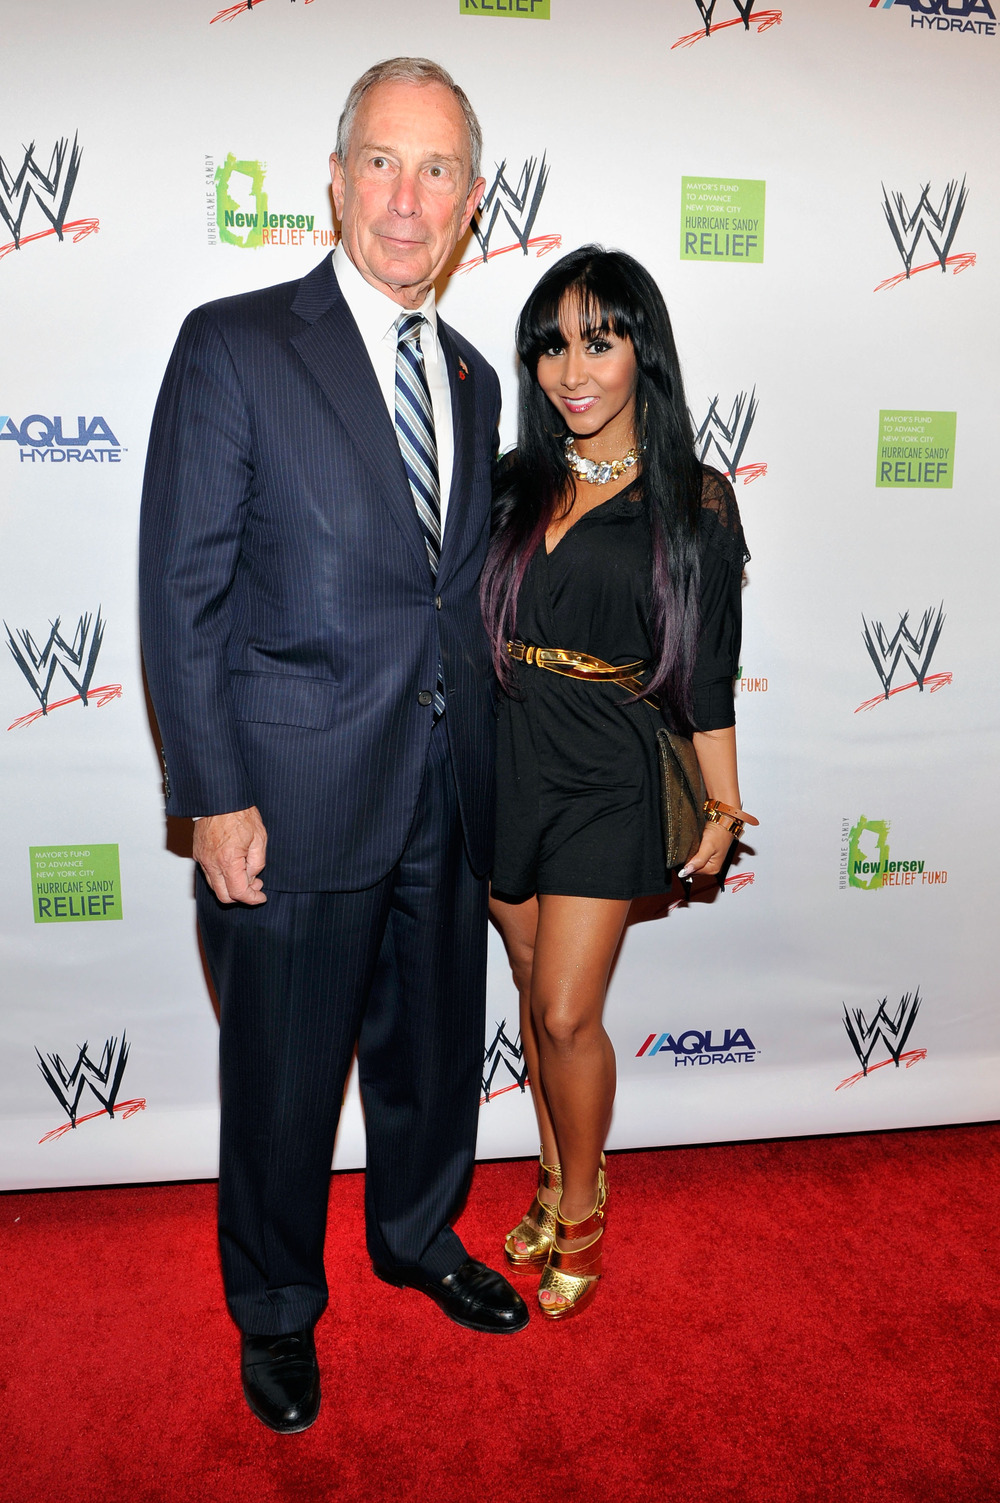 Jersey Shore Stars Reunite for Sandy Relief: Spotted in NYC (PHOTOS)